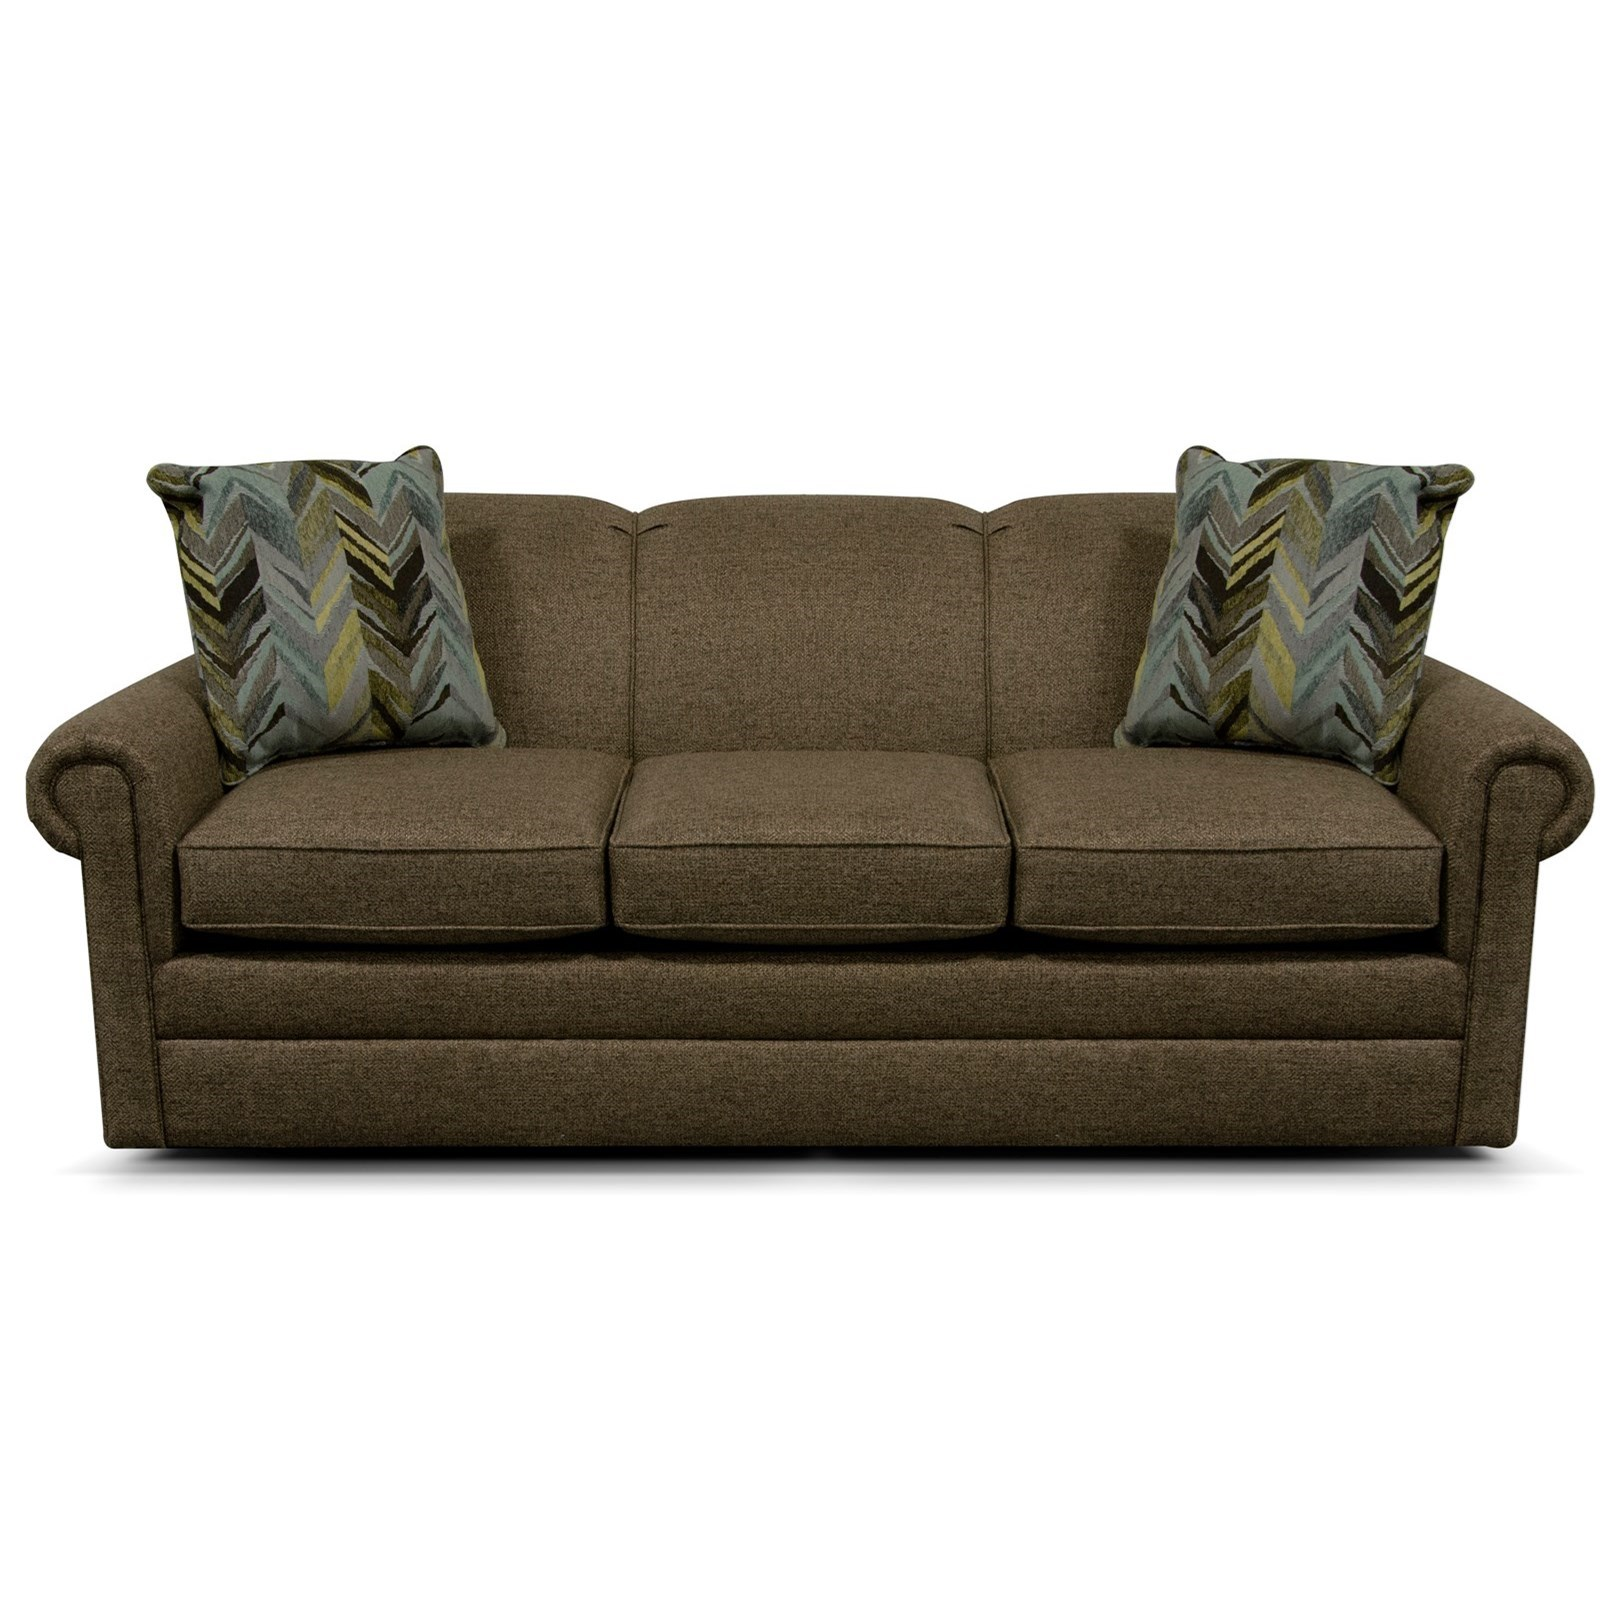 V90 Queen Sofa Sleeper by Alexvale at Turk Furniture